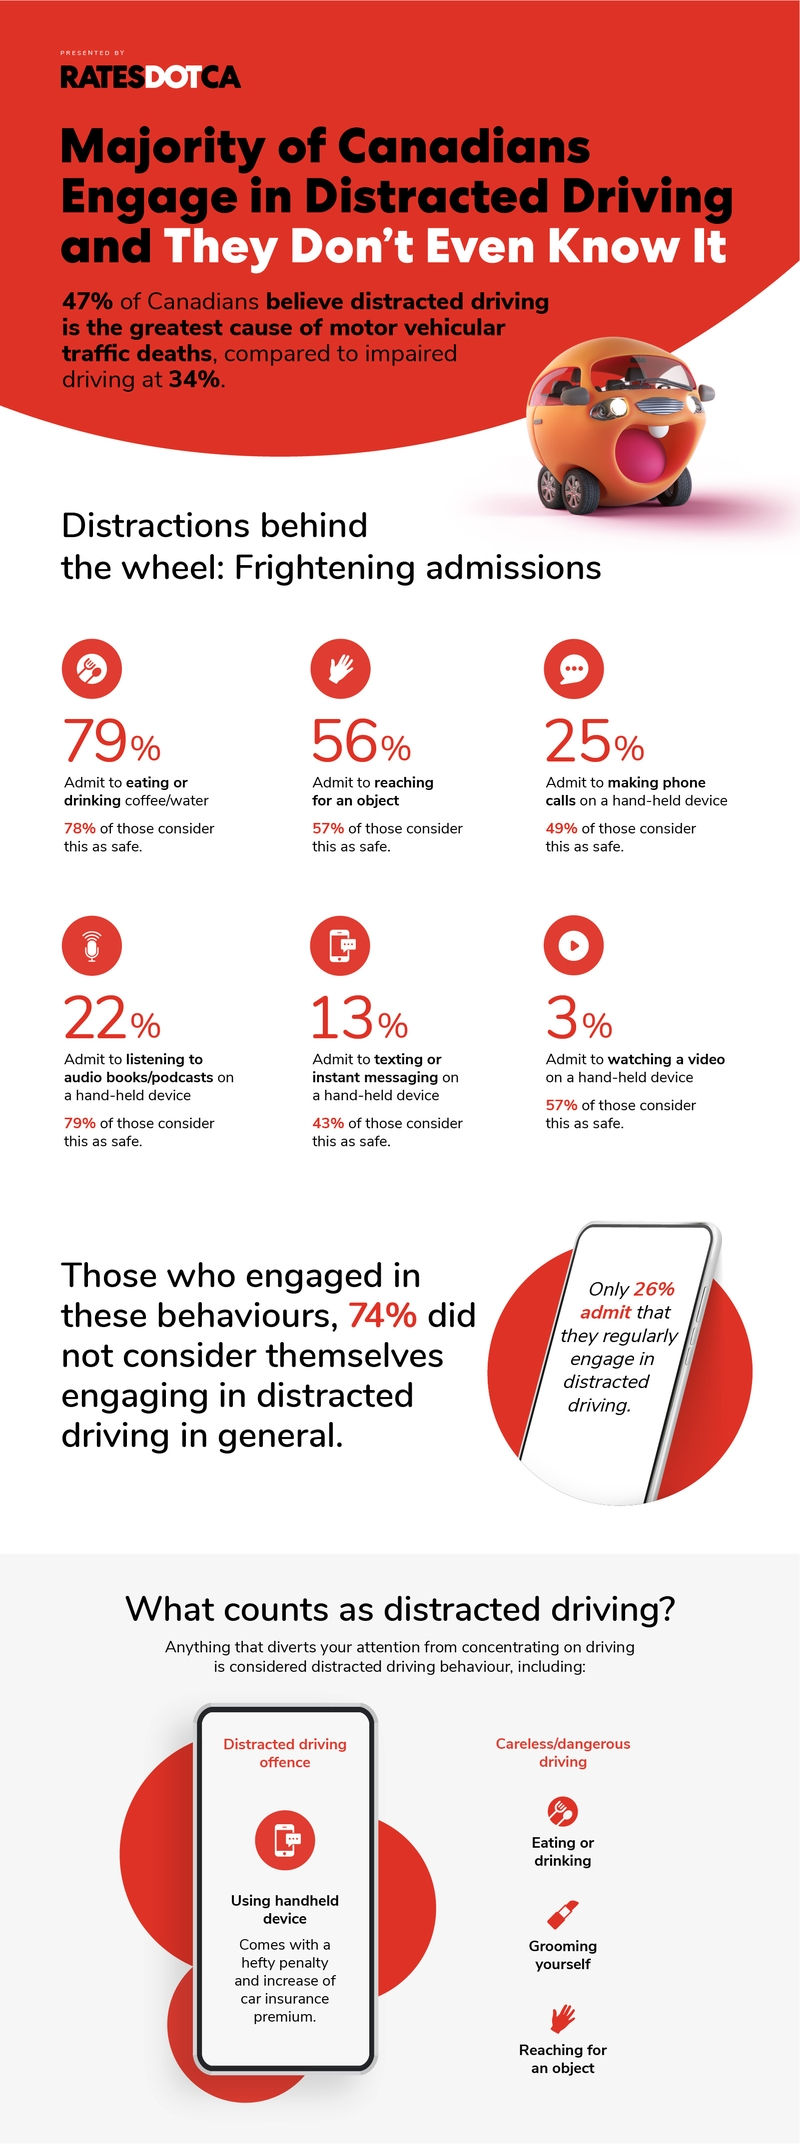 RDOT-037_2021_Distracted_Driving_Infographic_@2x-FINAL.jpg